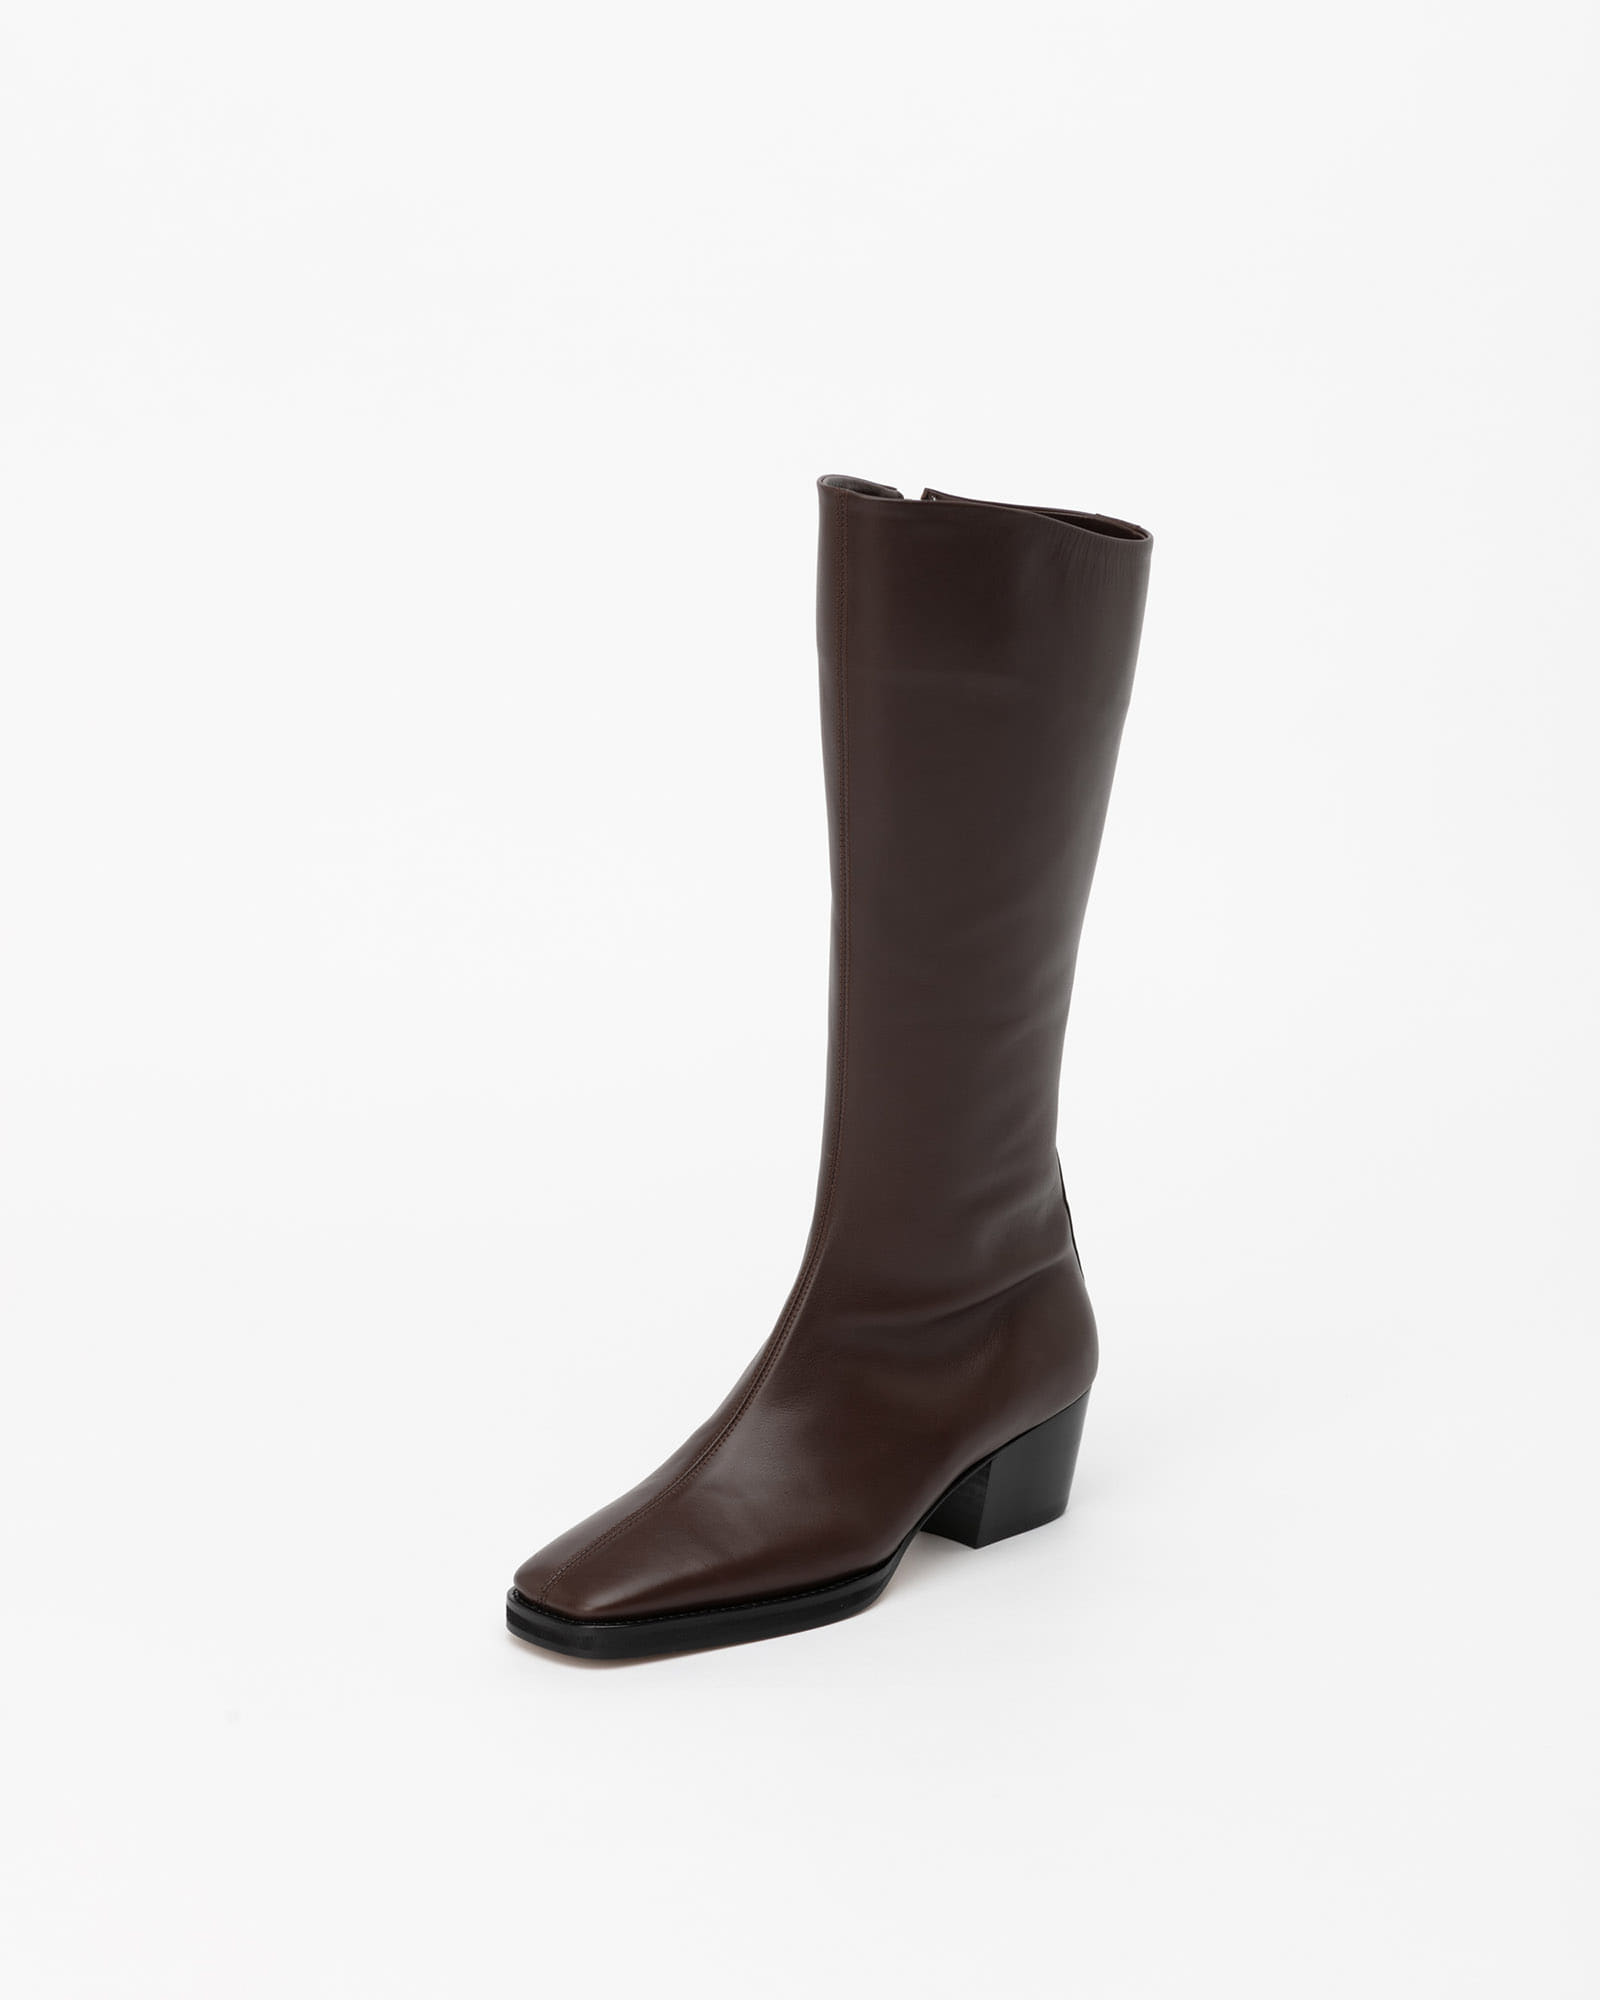 Basel Boots in Dark Brown